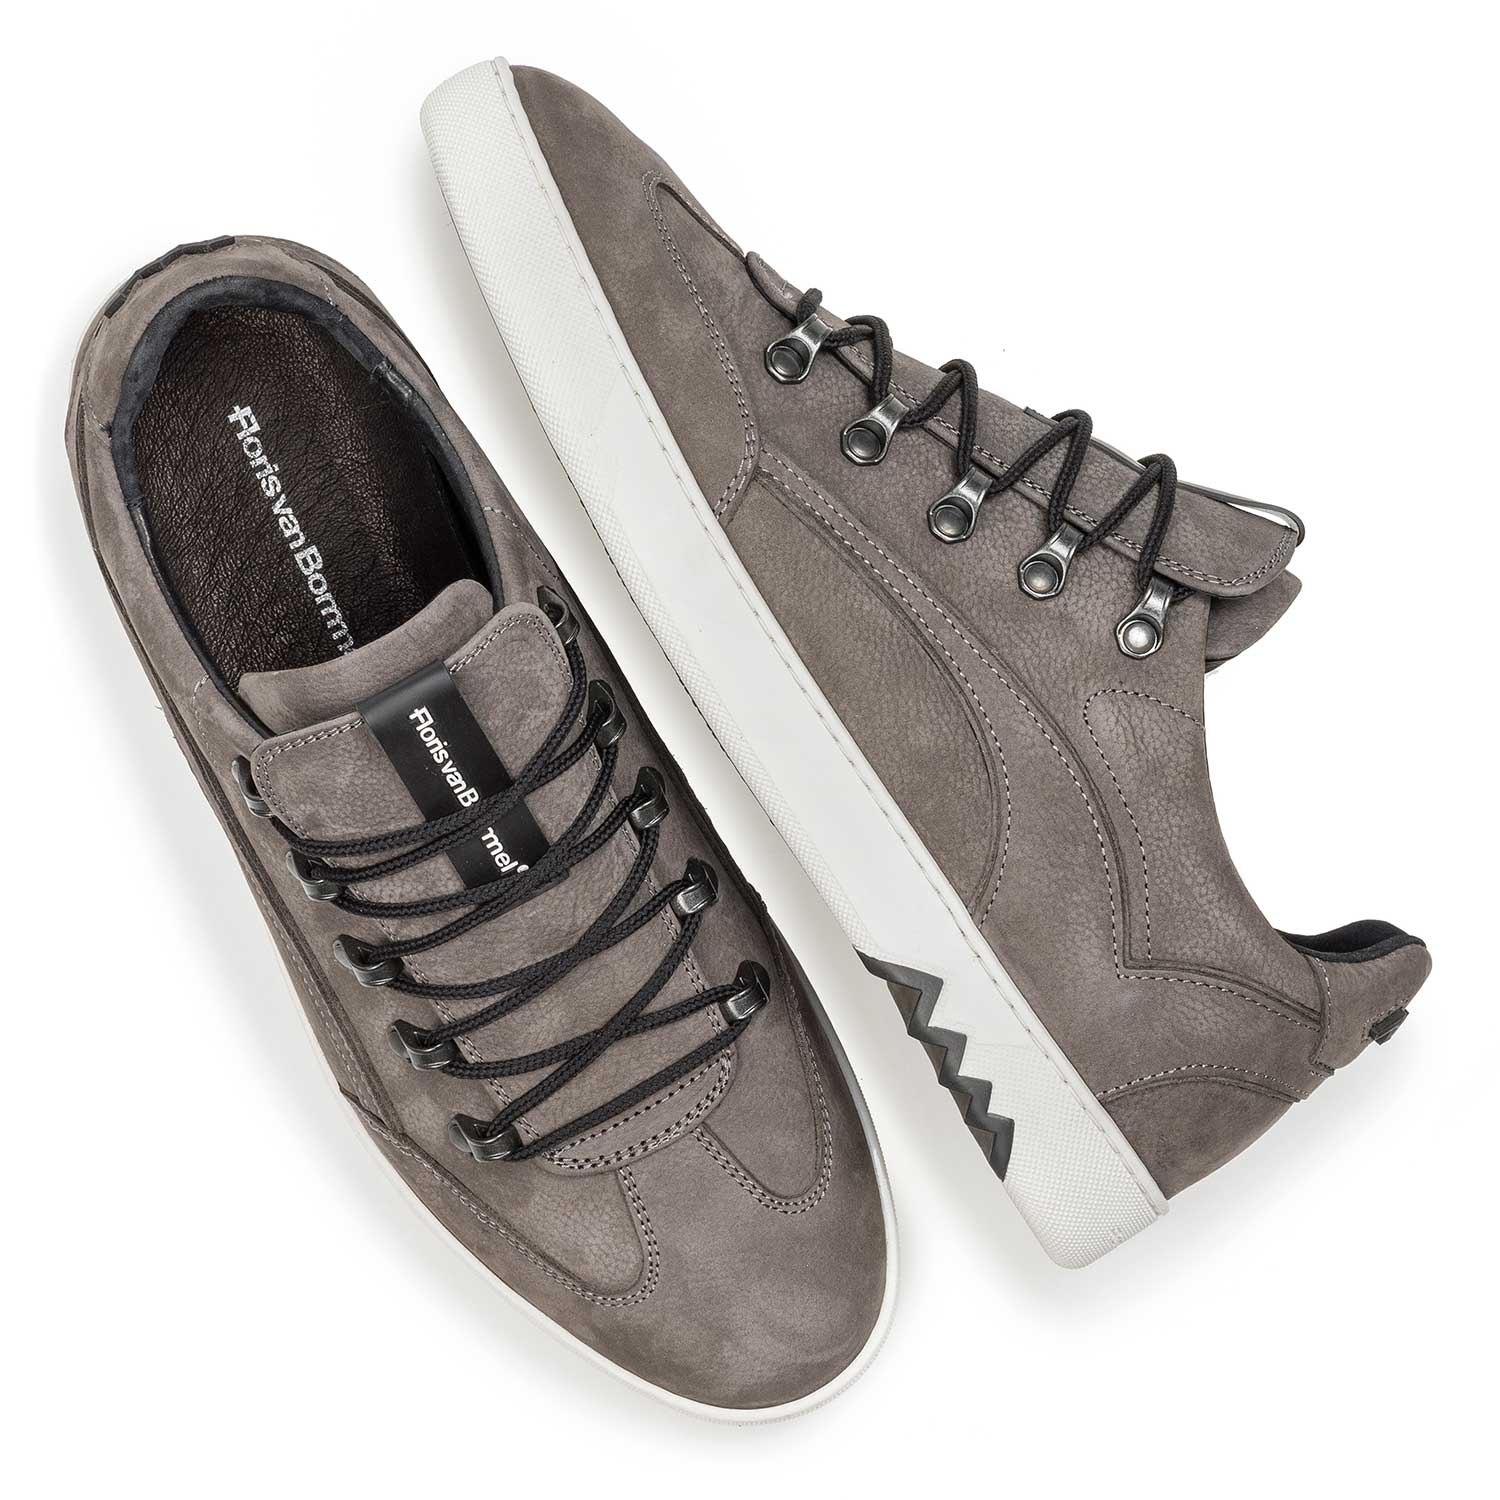 16464/02 - Dark grey nubuck leather lace shoe